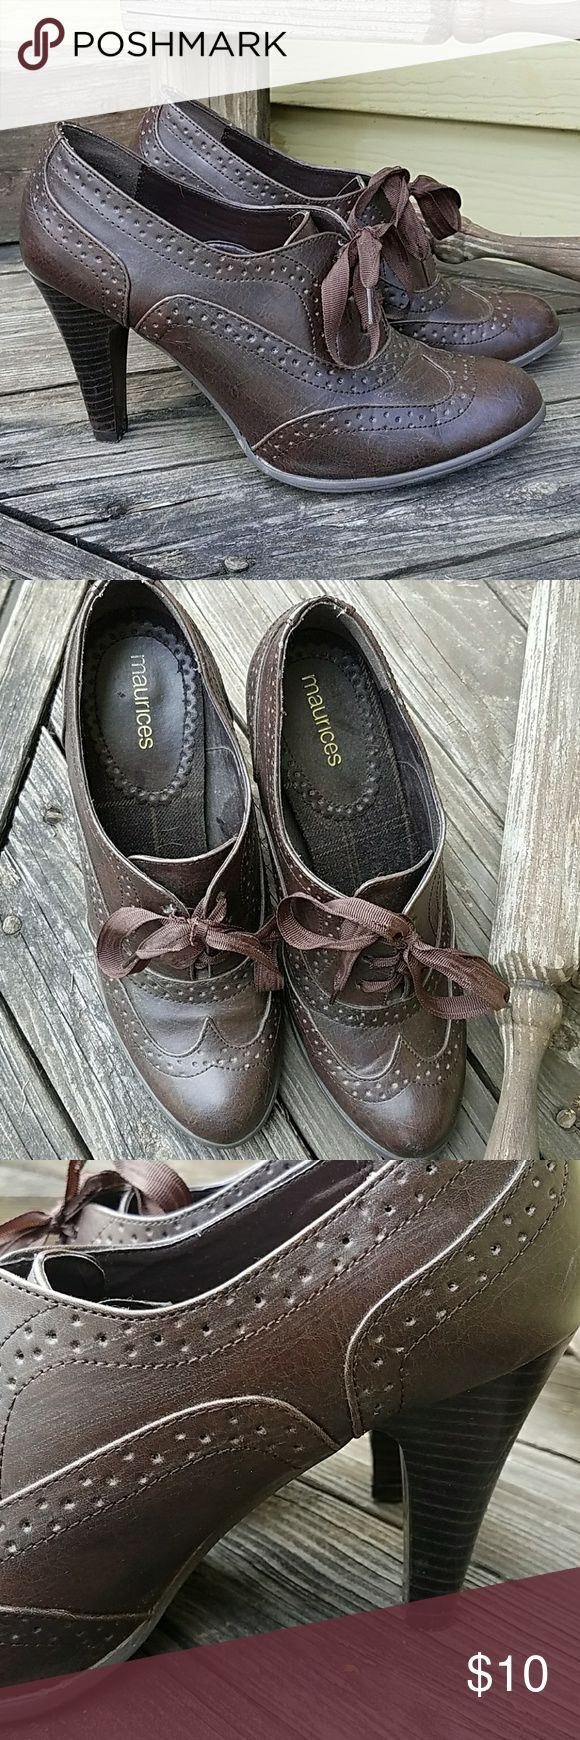 MAURICES Heeled Booties Size 9 Adorable! MAURICES heeled booties! Tie on top with two inch heel. Size 9  Tags: camo country girl southern girl western southwestern buckle miss me justin boots ariat almost famous jeans shorts new follow game sale boho festival summer sale denim shorts jeans skirt mini juniors womens leggings yoga pants vanilla star american eagle aero aeropostale booties heels MAURICES size 9 Maurices Shoes Ankle Boots & Booties